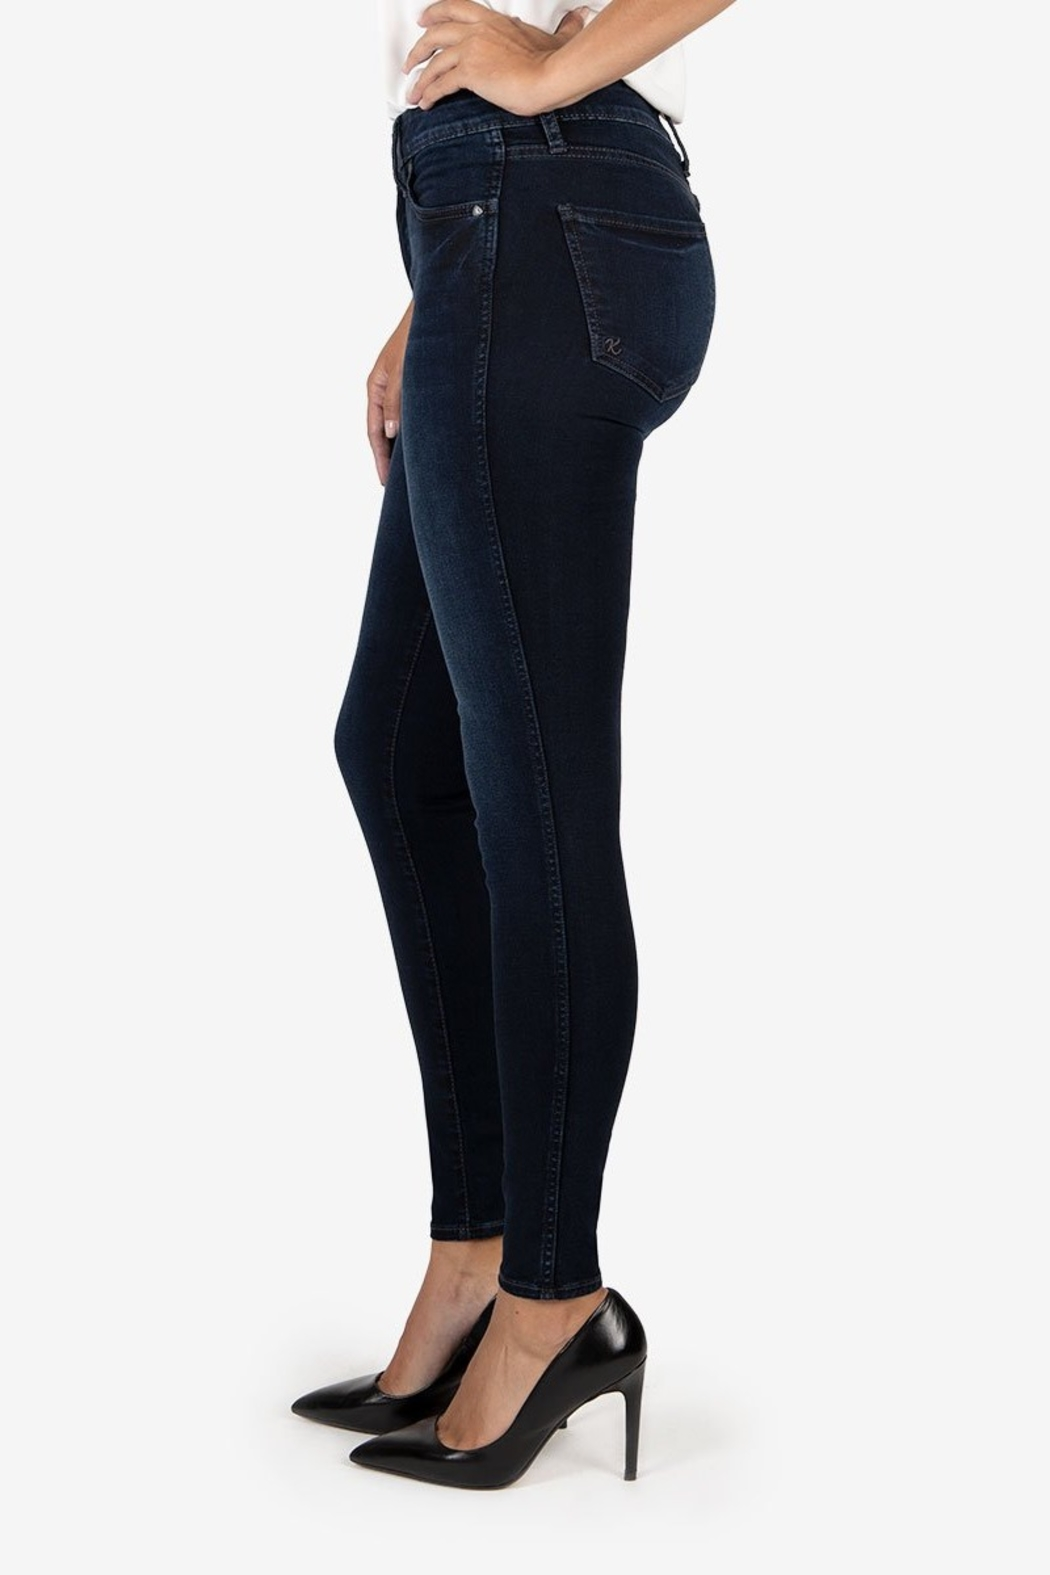 Kut from the Kloth MIA HIGH RISE FAB AB TOOTHPICK - Front Full Image